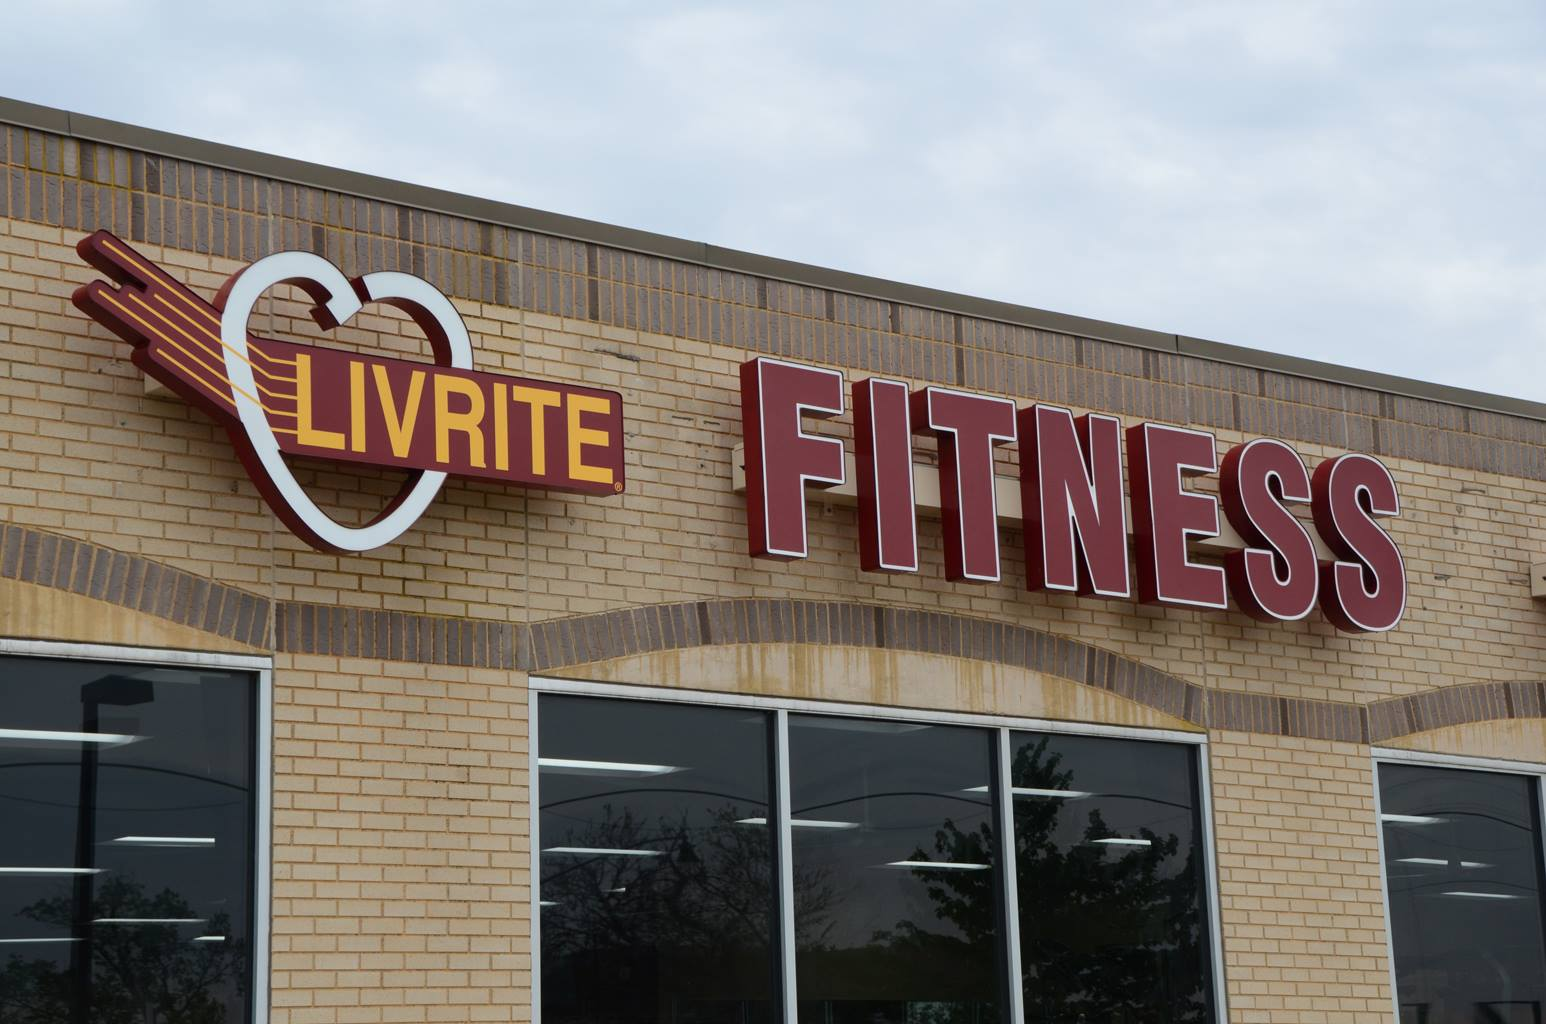 Indianapolis Gyms